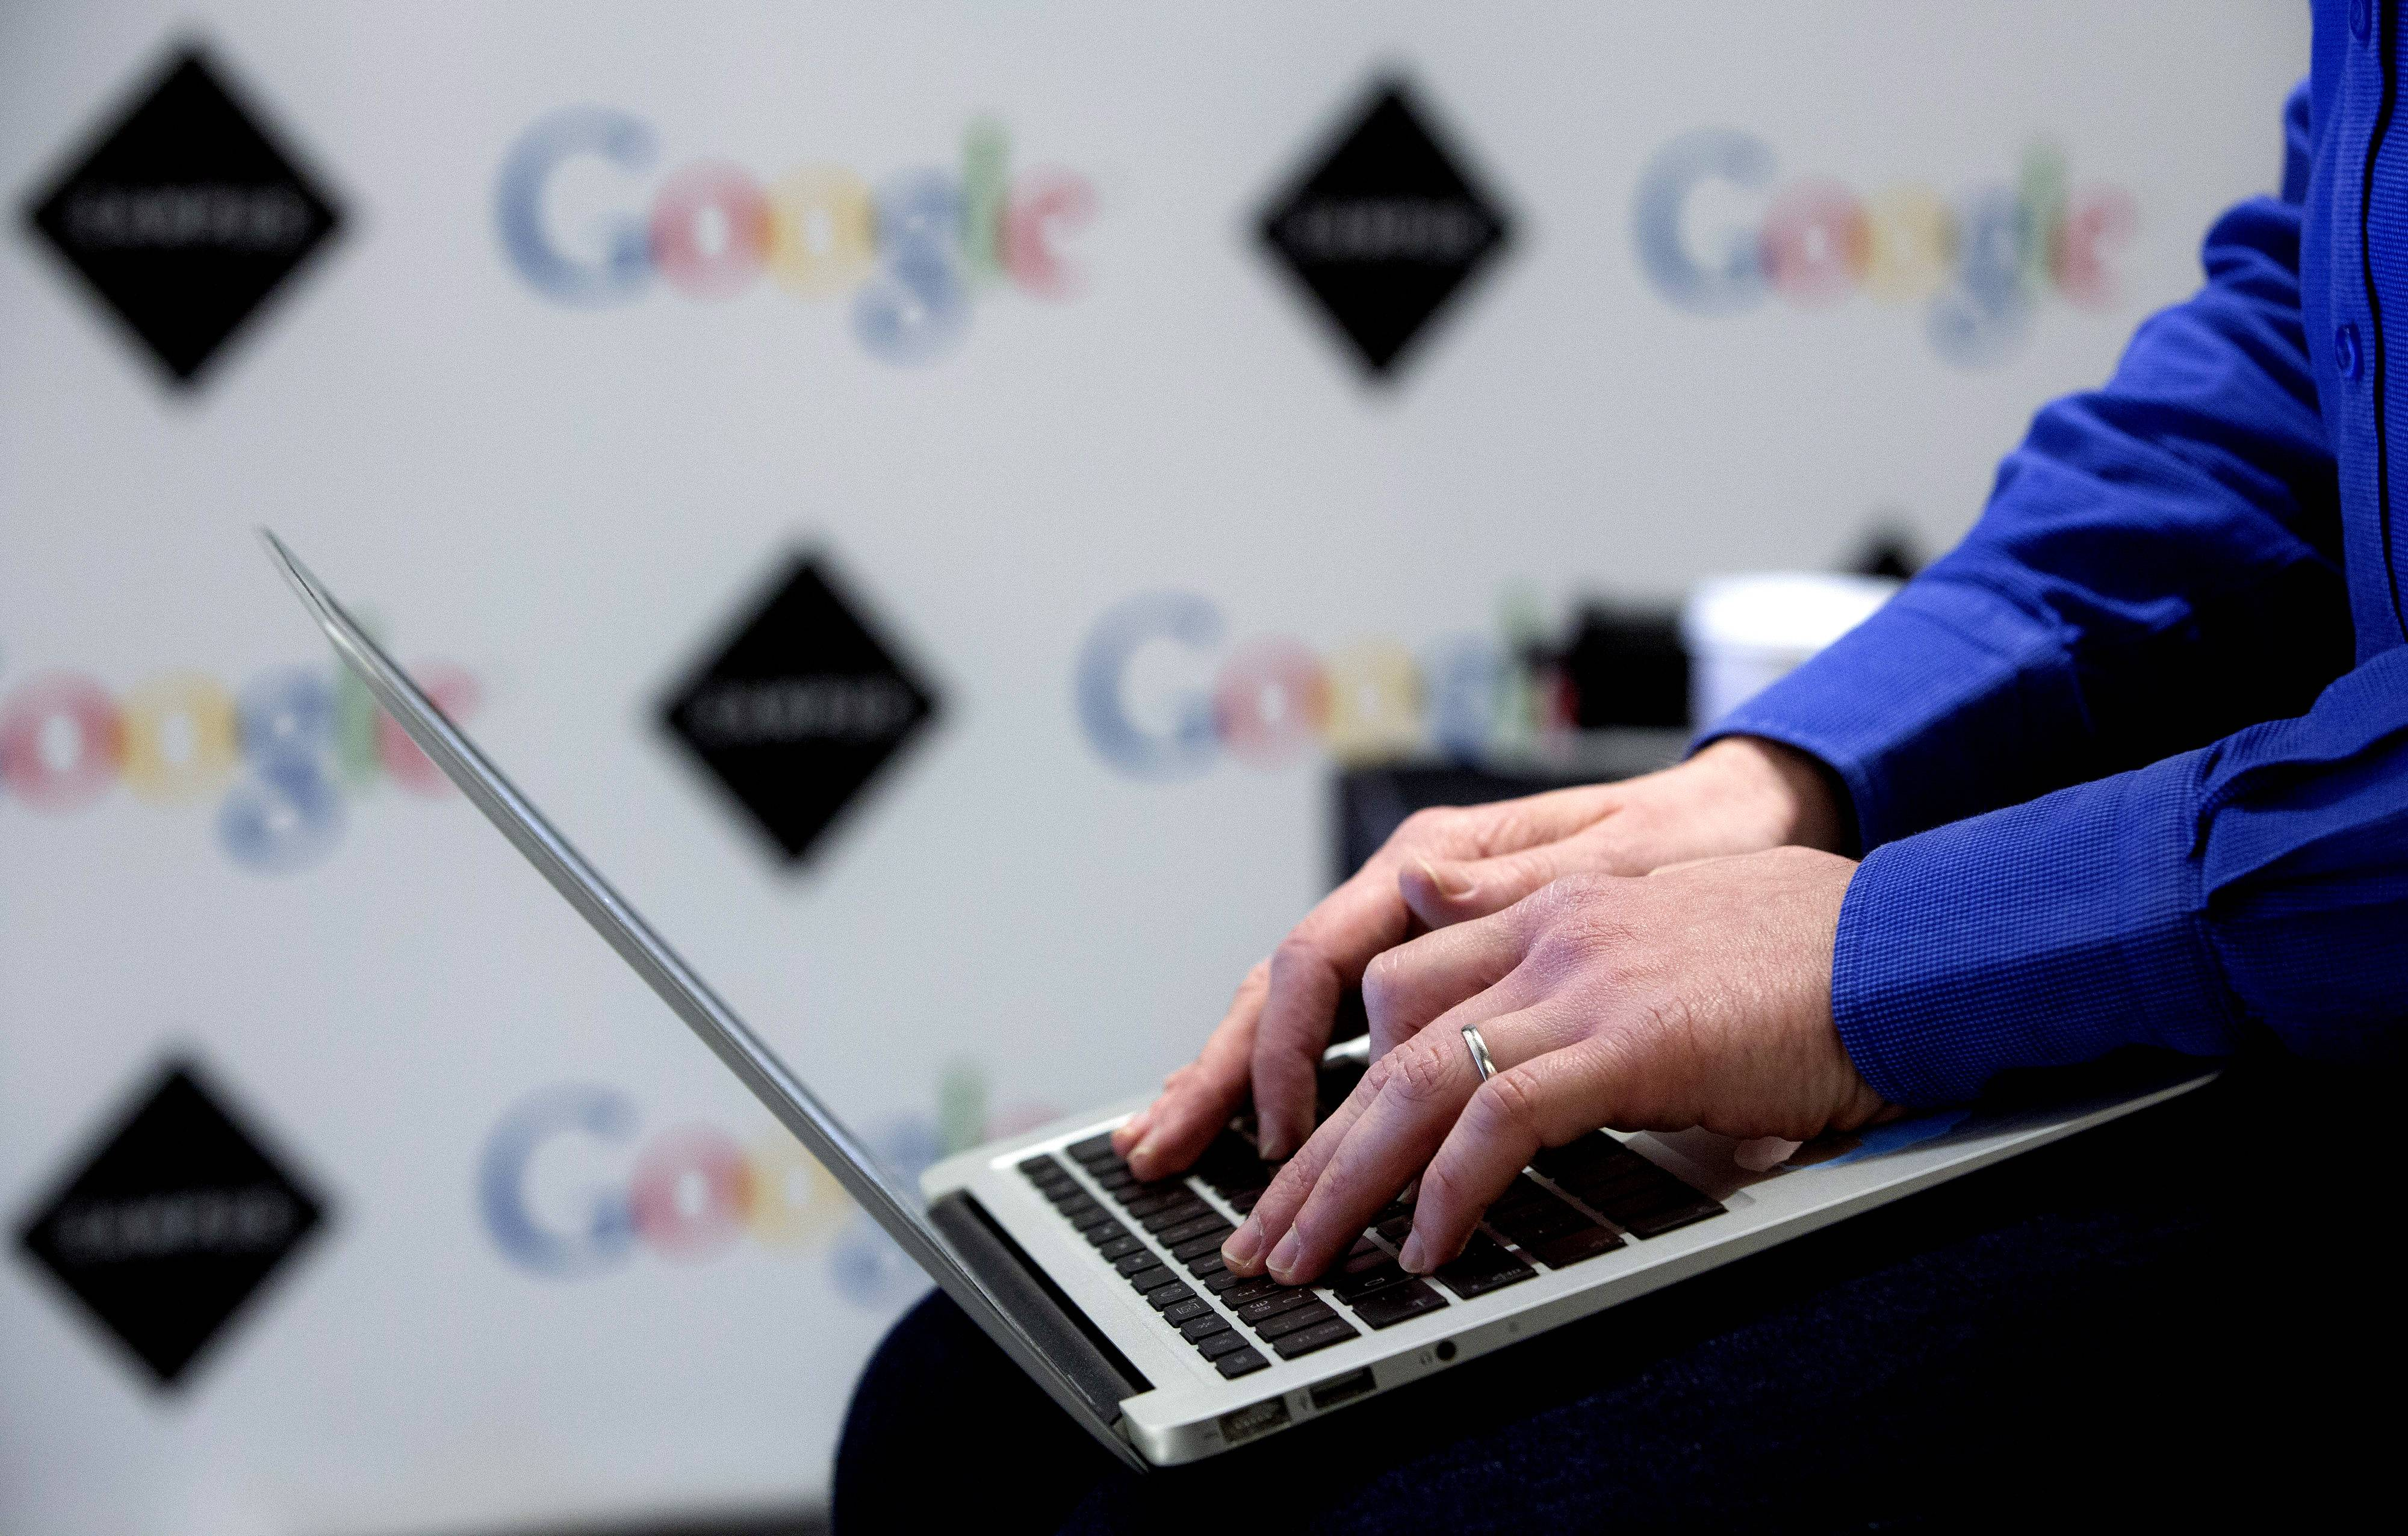 Google Inc., fighting claims that it illegally scanned private email messages to and from Gmail accounts, will not face a single lawsuit that could have lumped together hundreds of millions of Internet users, a judge ruled.